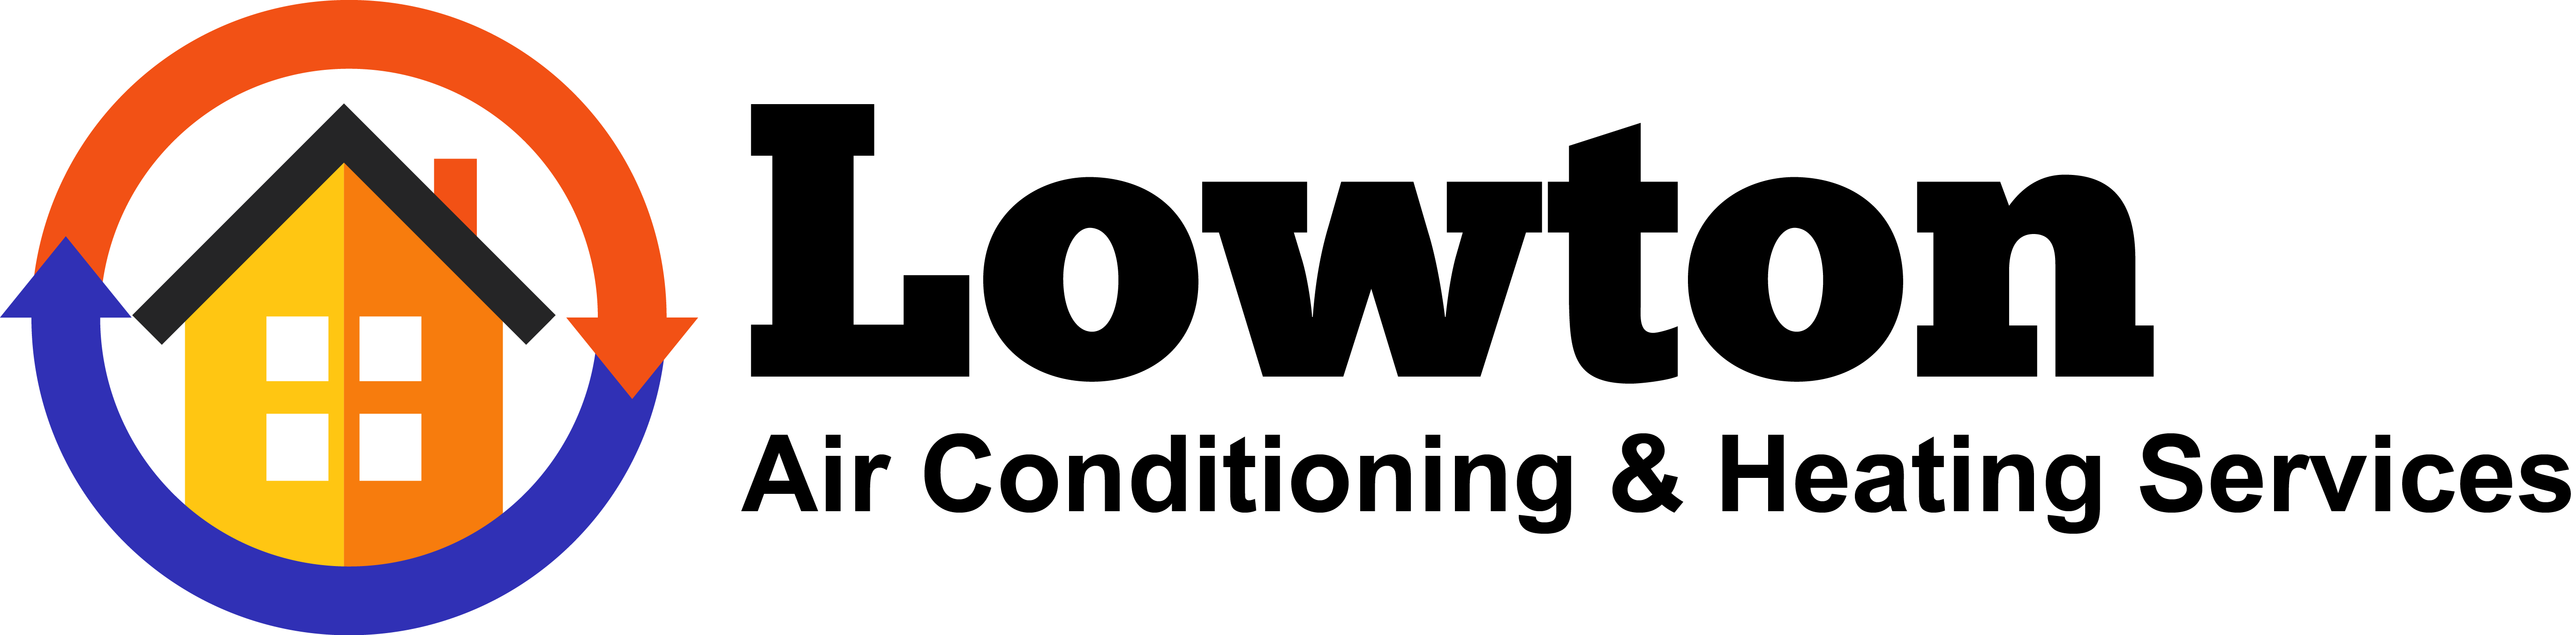 Lowton Air Conditioning & Heating Services